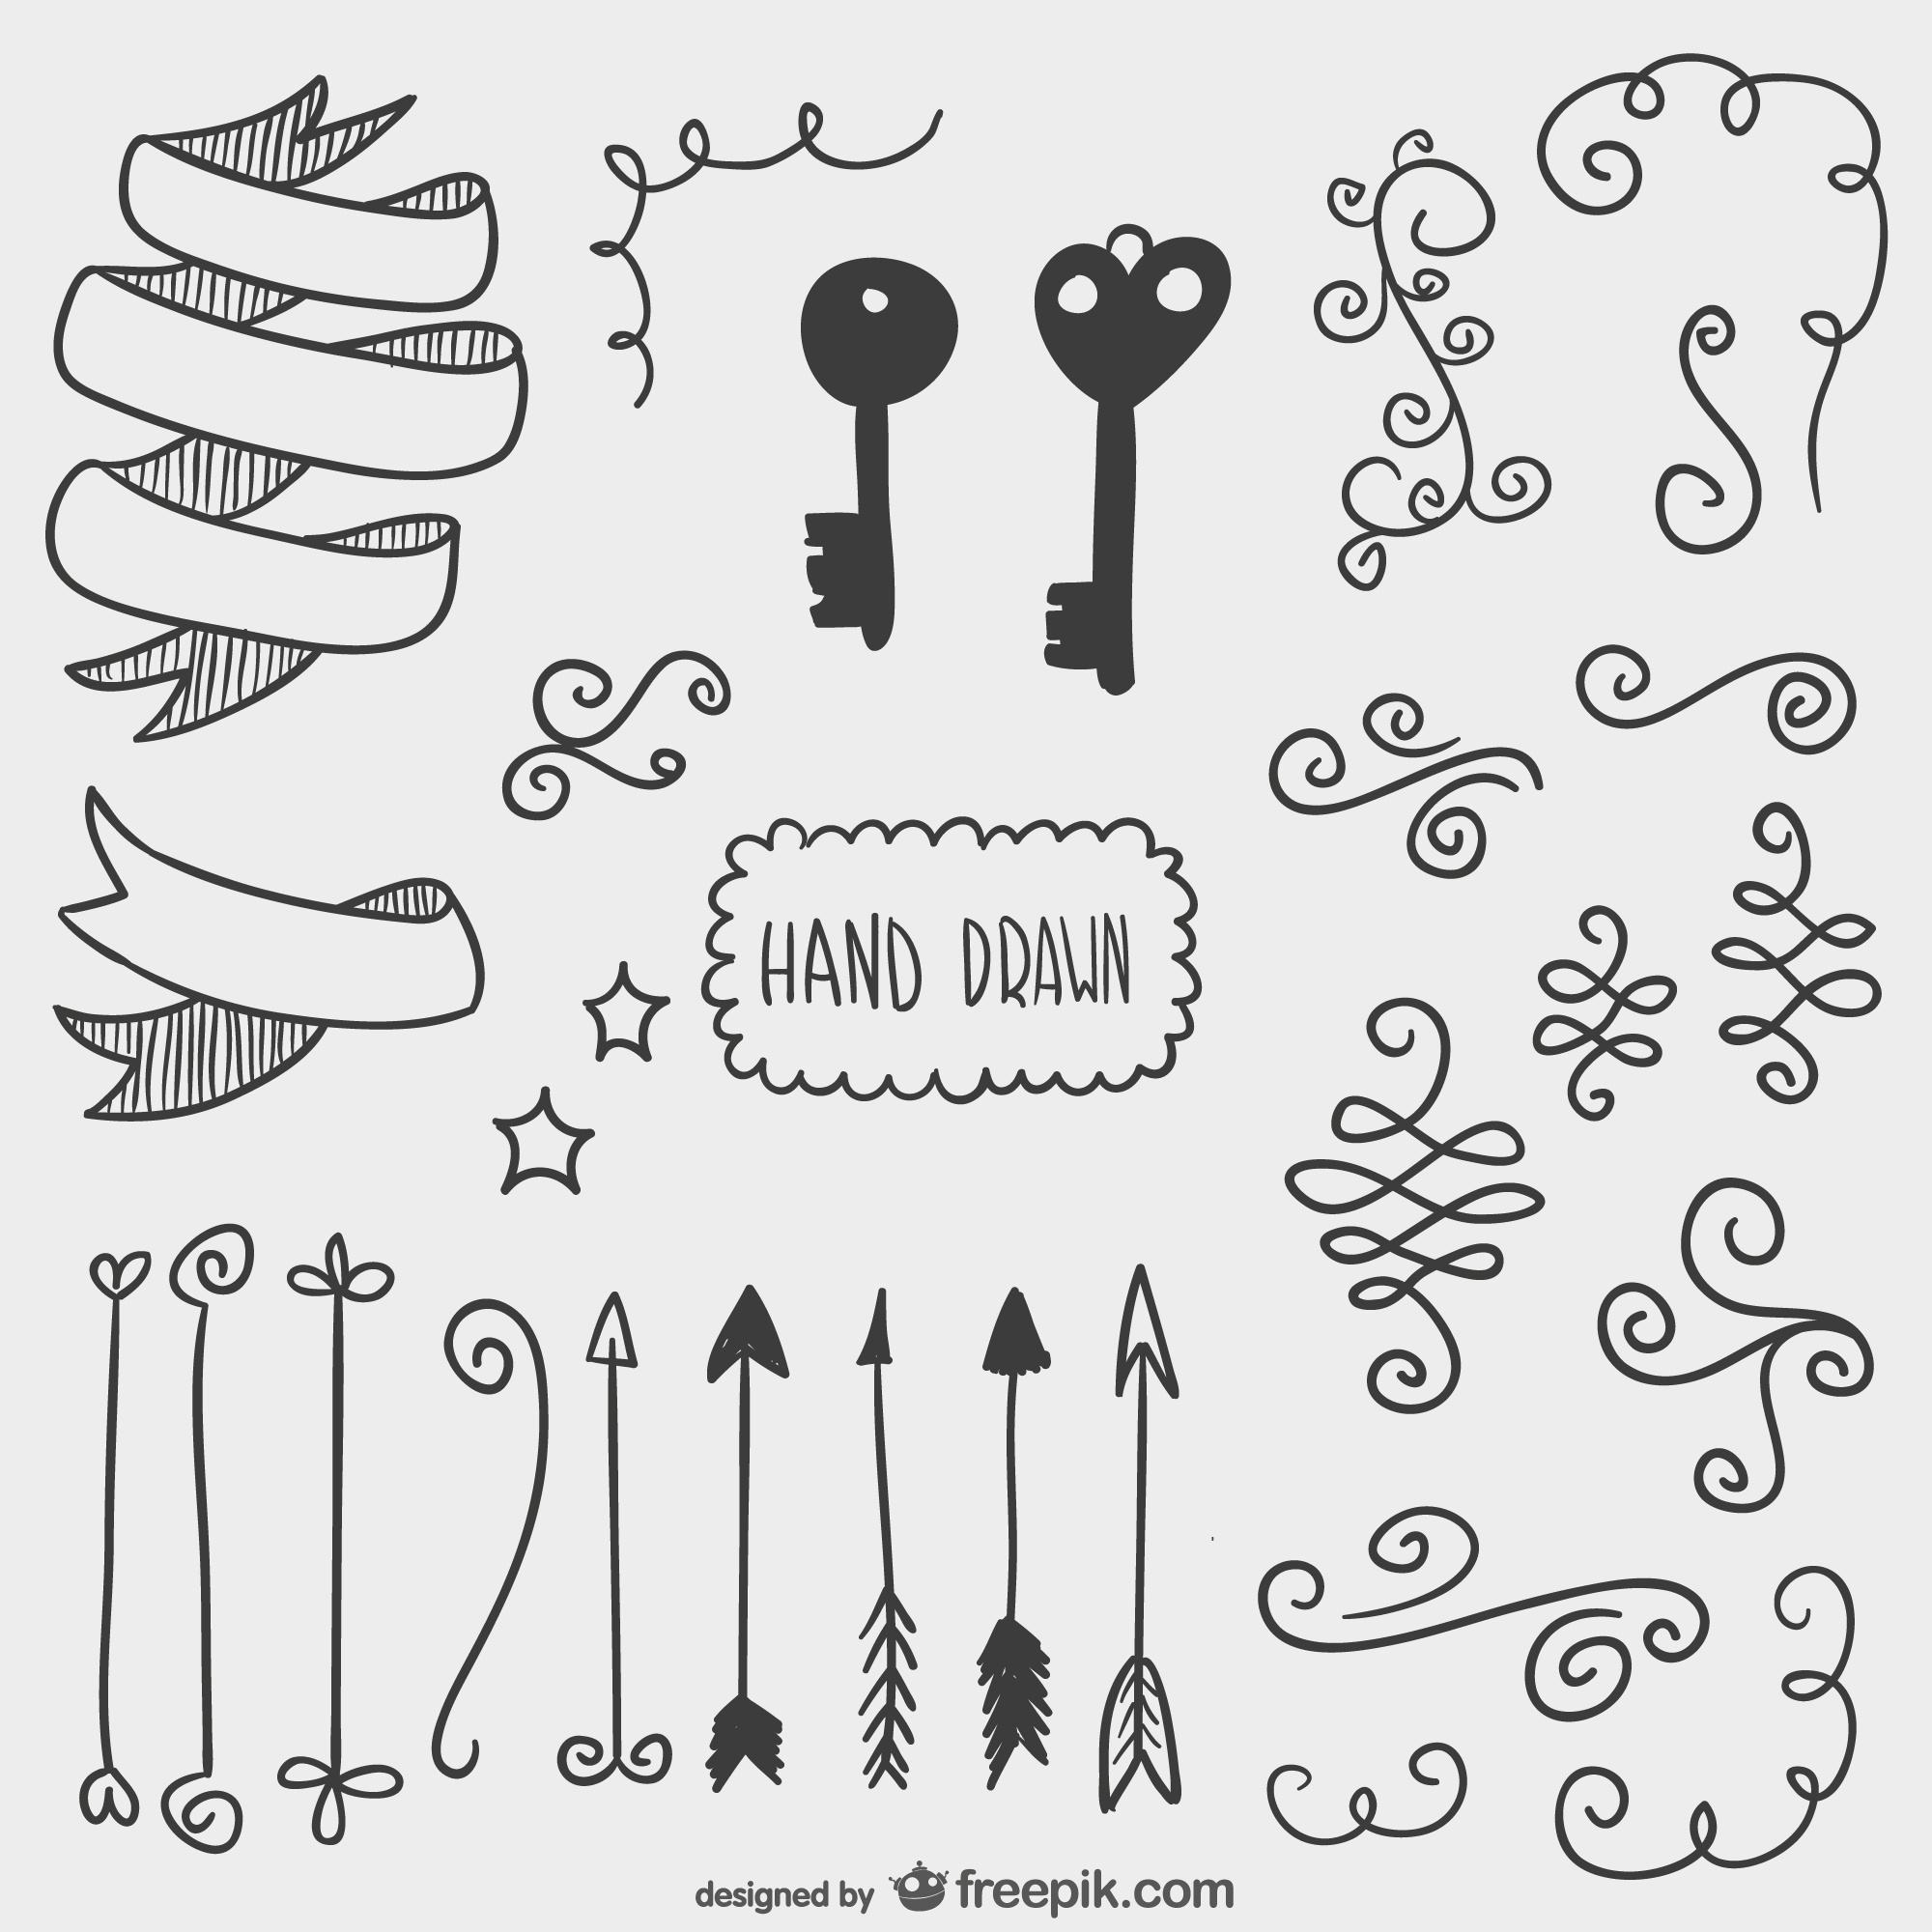 Drawn arrows, keys and other ornaments